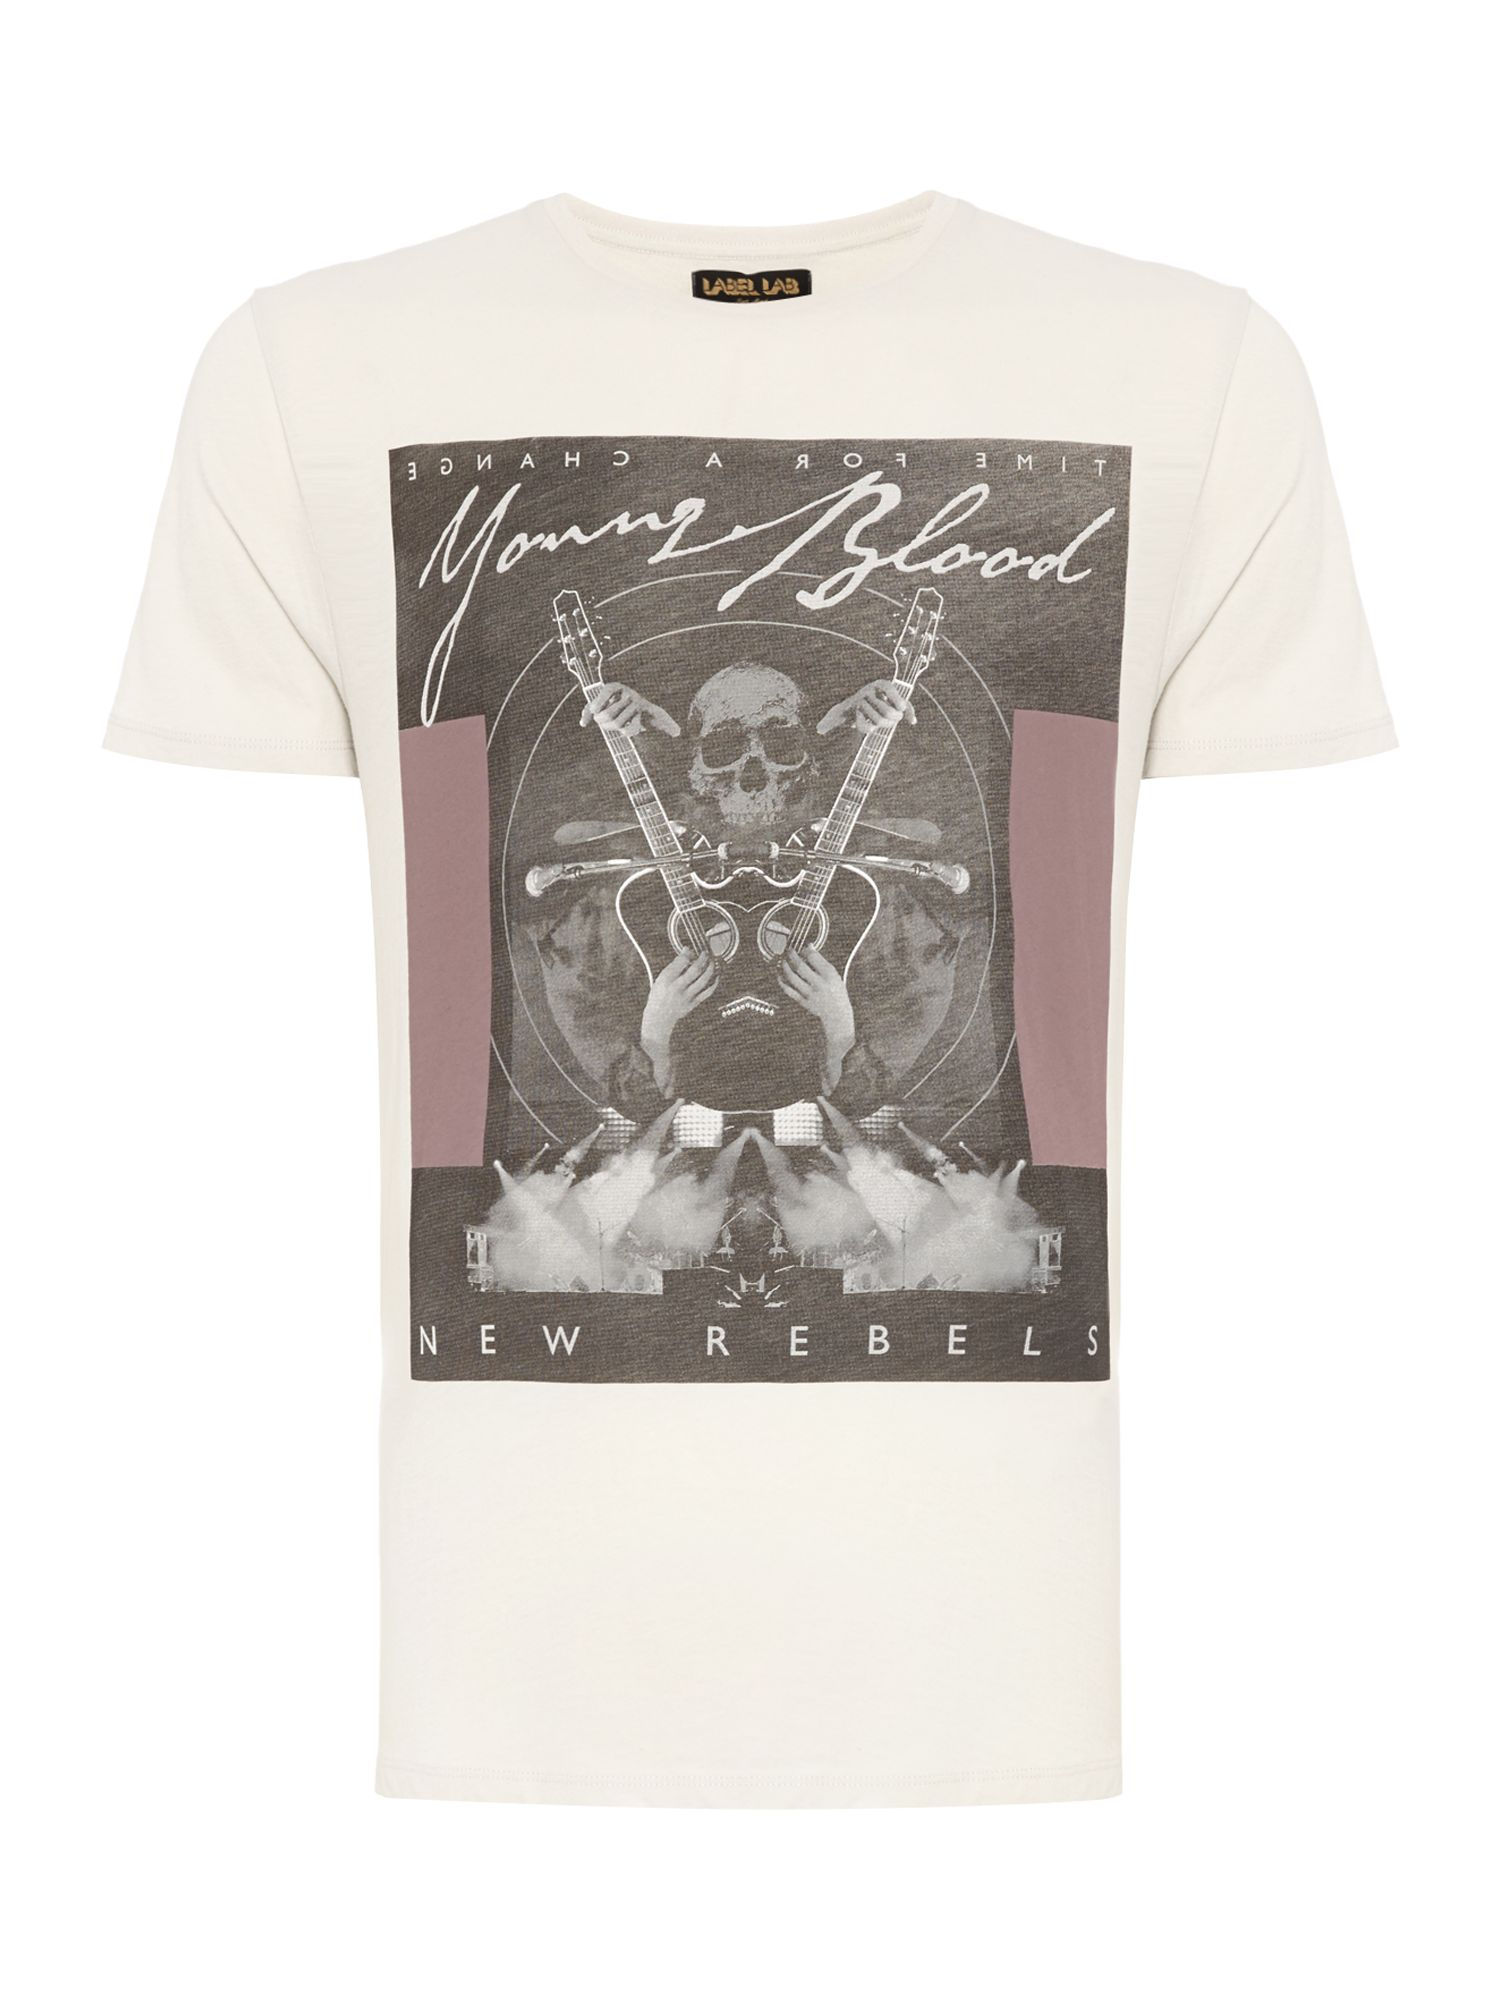 Young blood graphic tee